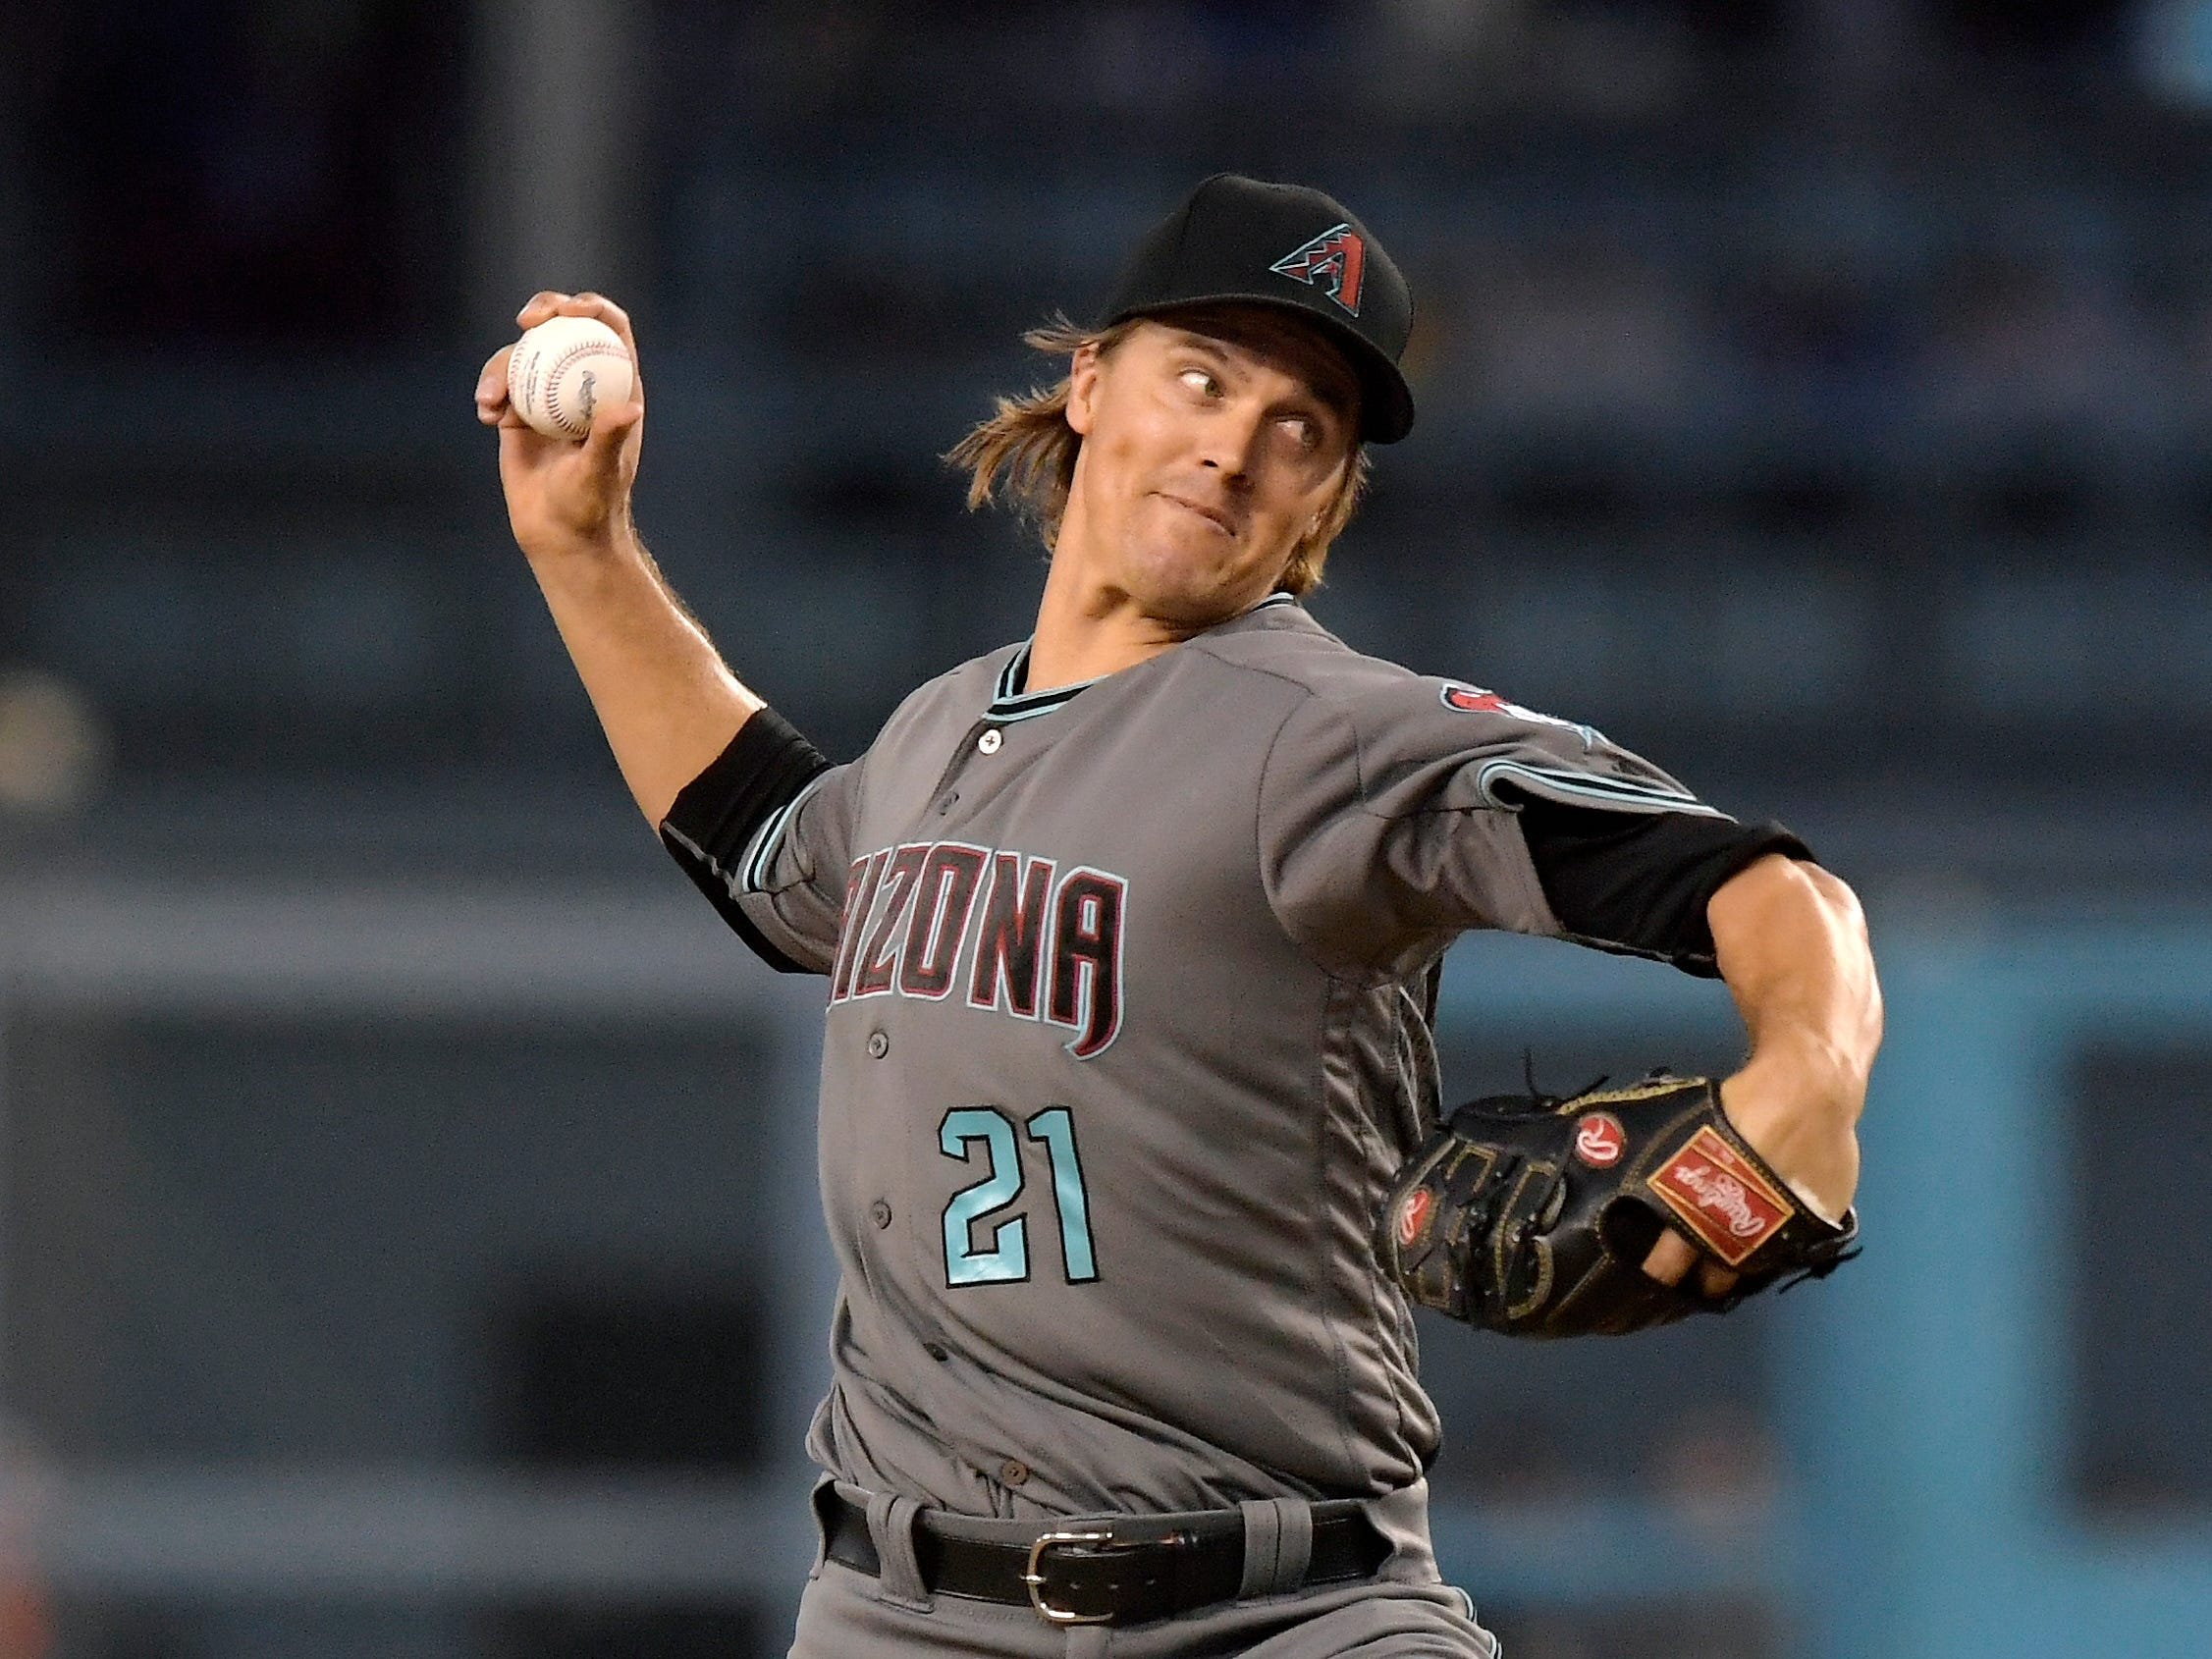 Arizona Diamondbacks starting pitcher Zack Greinke throws to the plate during the first inning of a baseball game against the Los Angeles Dodgers, Friday, Aug. 31, 2018, in Los Angeles.